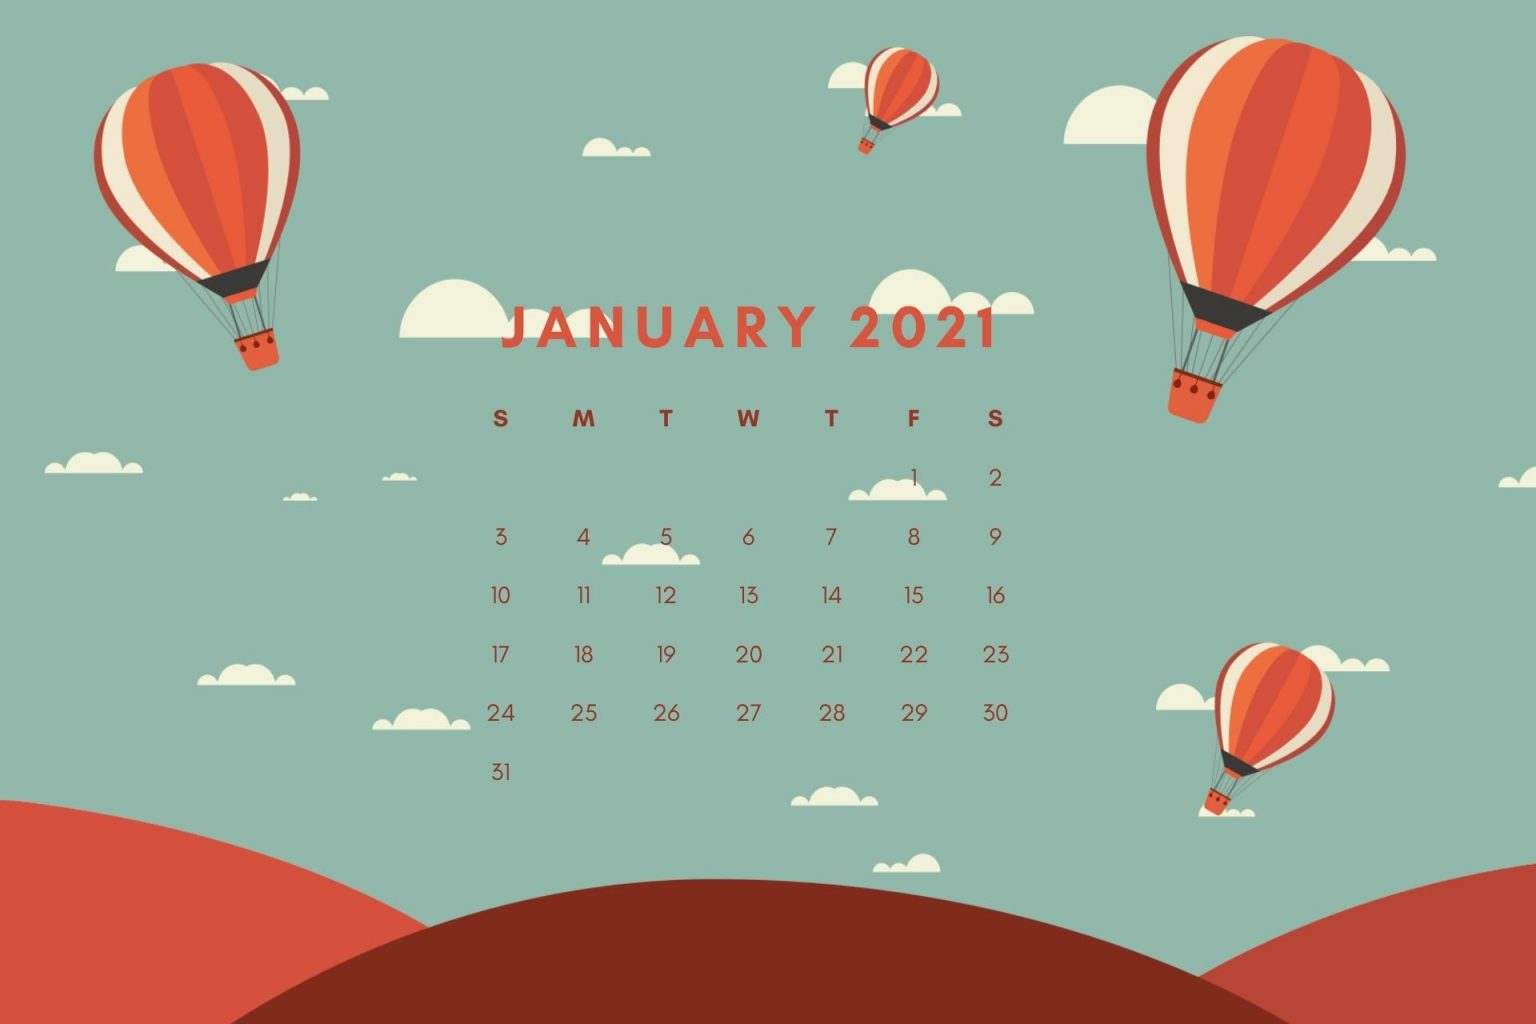 January 2021 Calendar Wallpaper Download